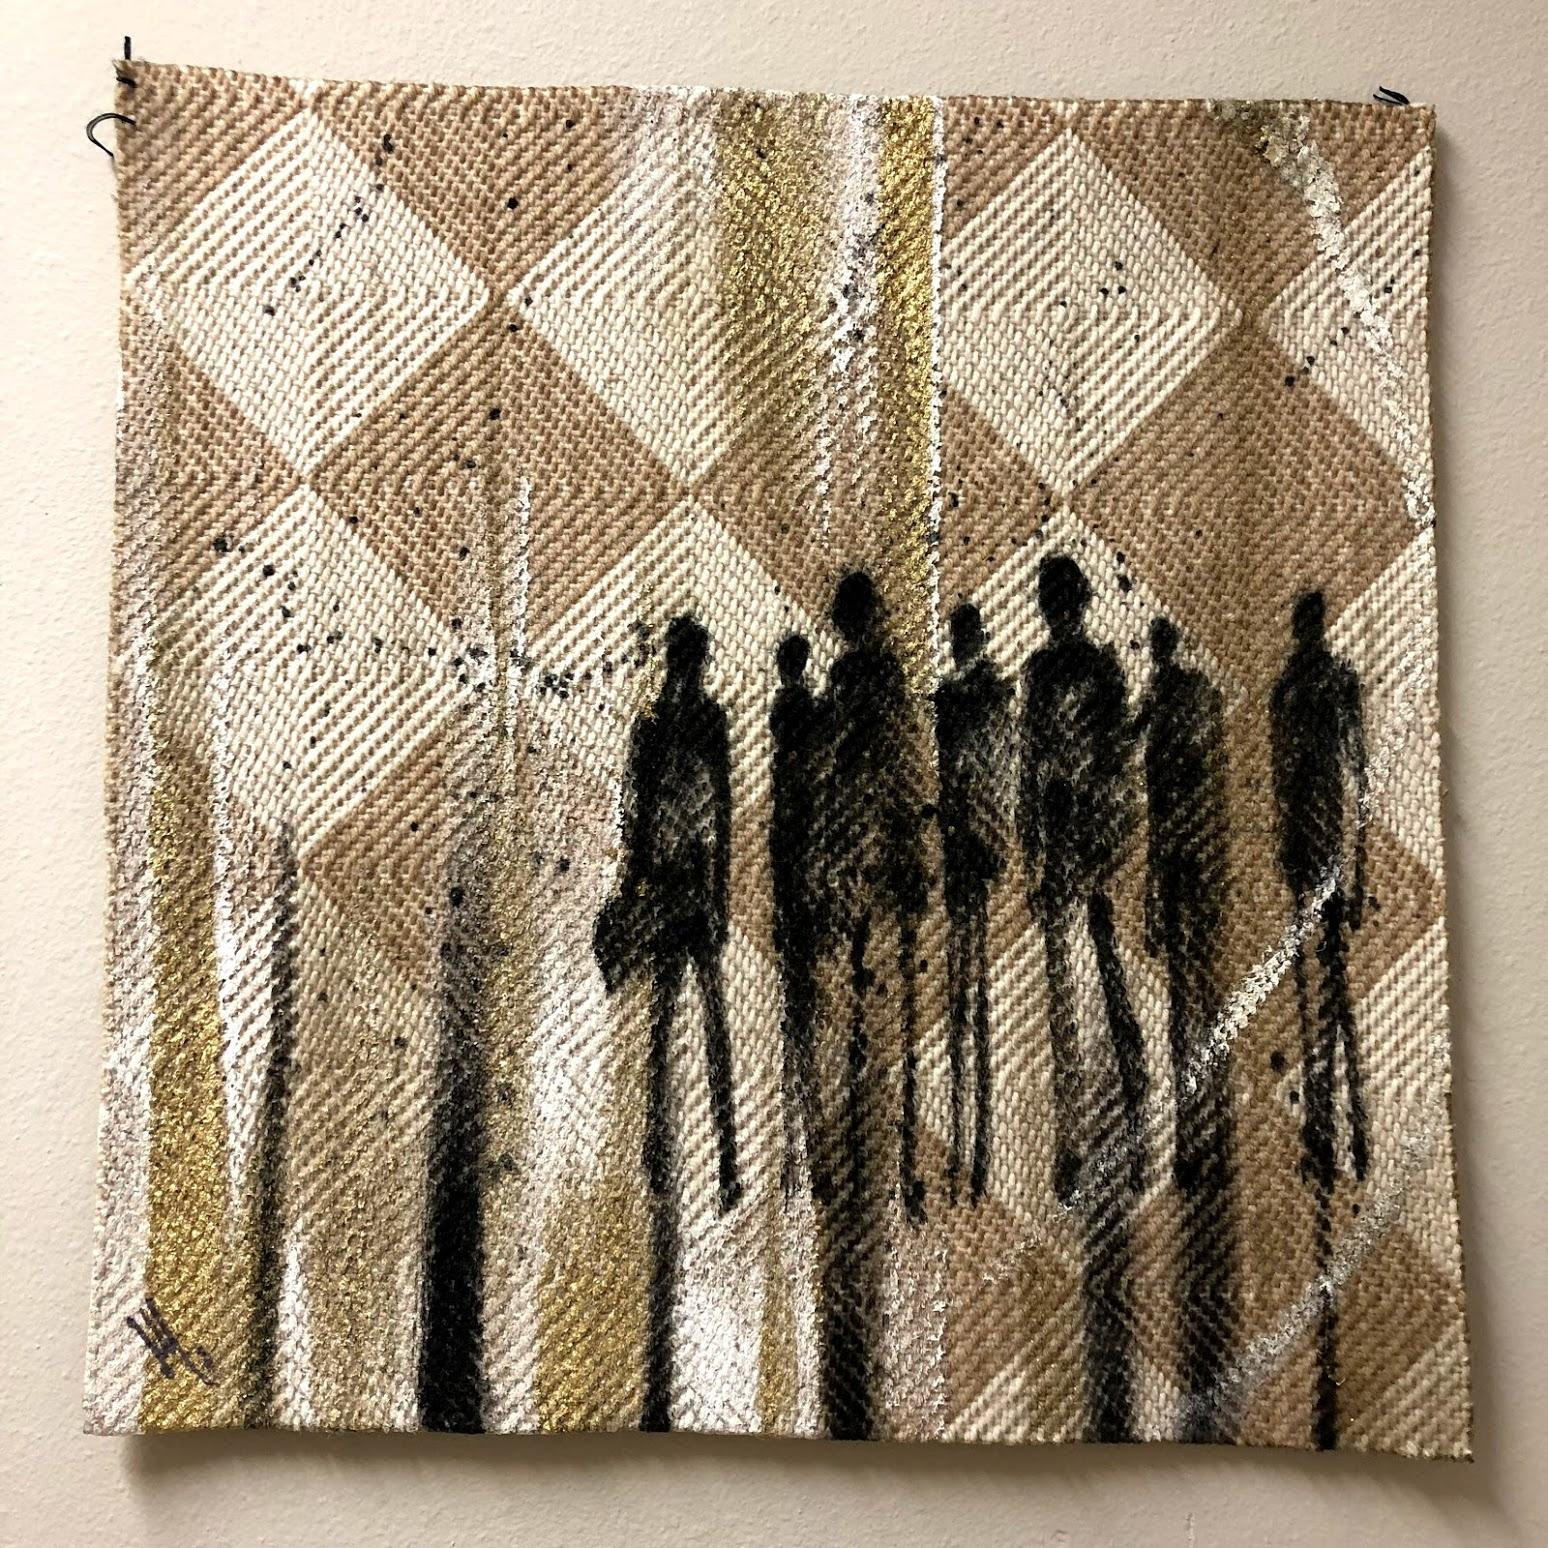 Textile Series IV - Oil Painting, Hand Woven Textile, Contemporary, Figurative